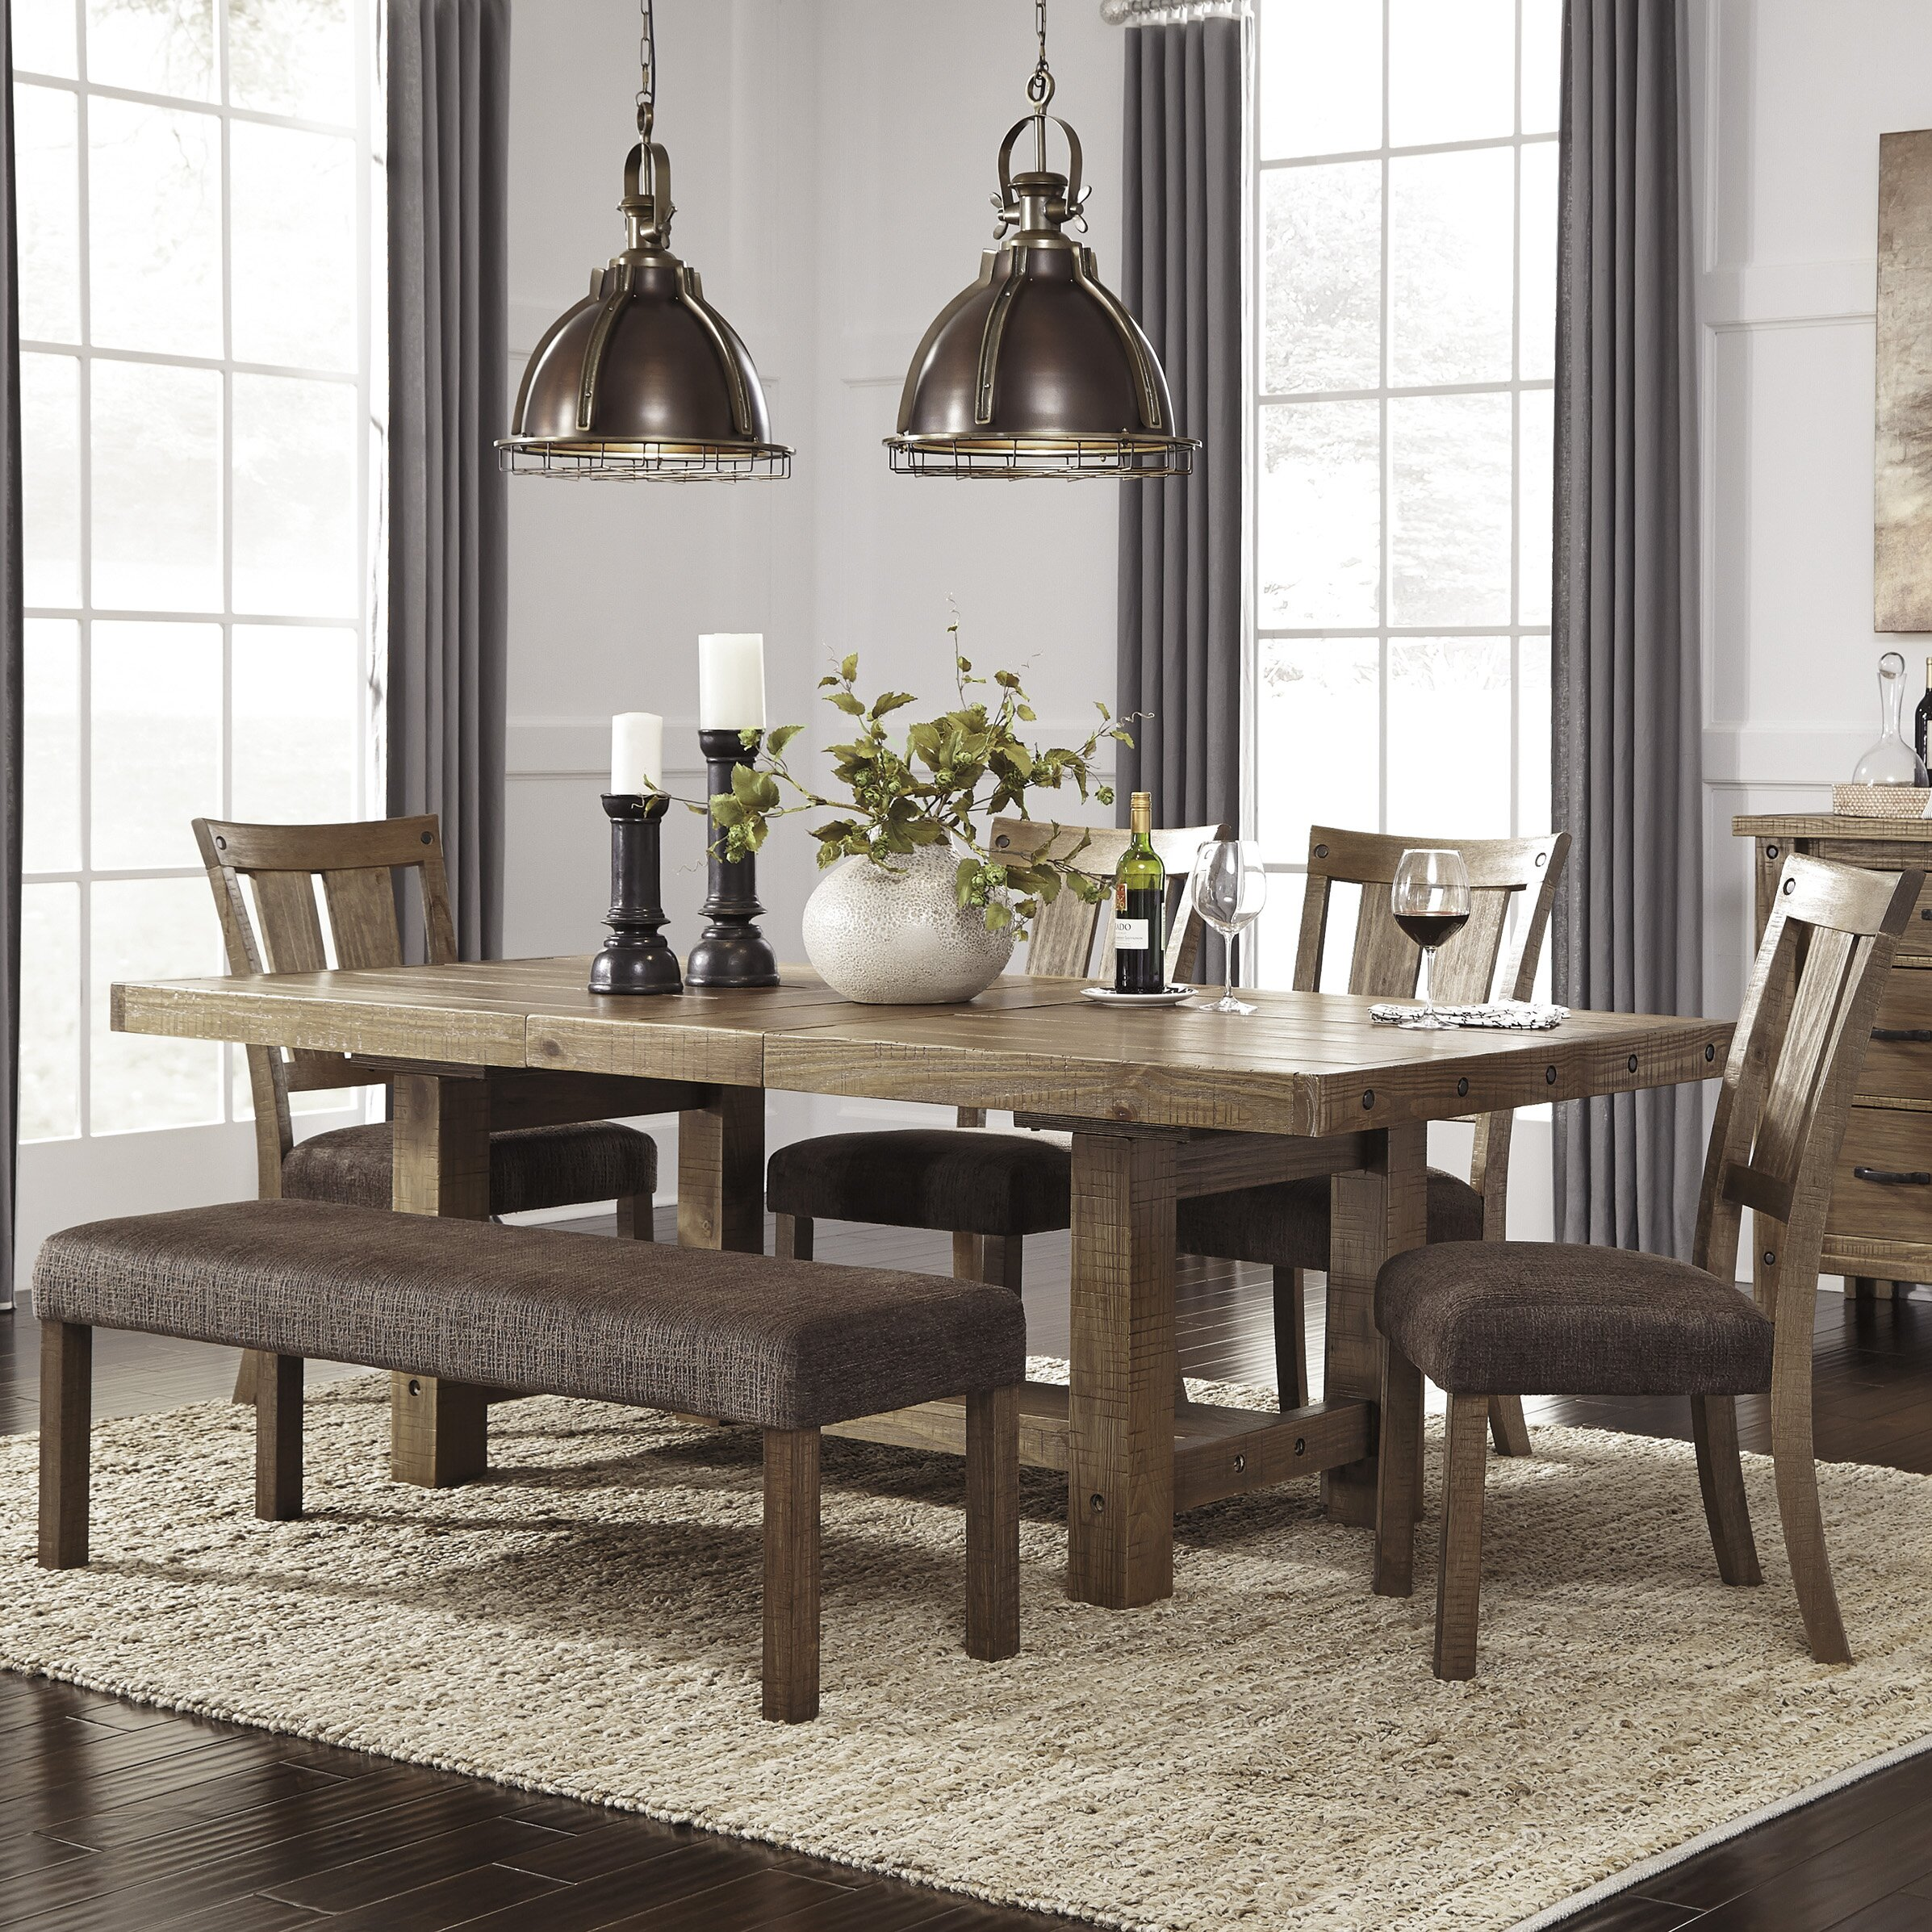 Signature design by ashley 9 piece dining set reviews for Dining furniture design